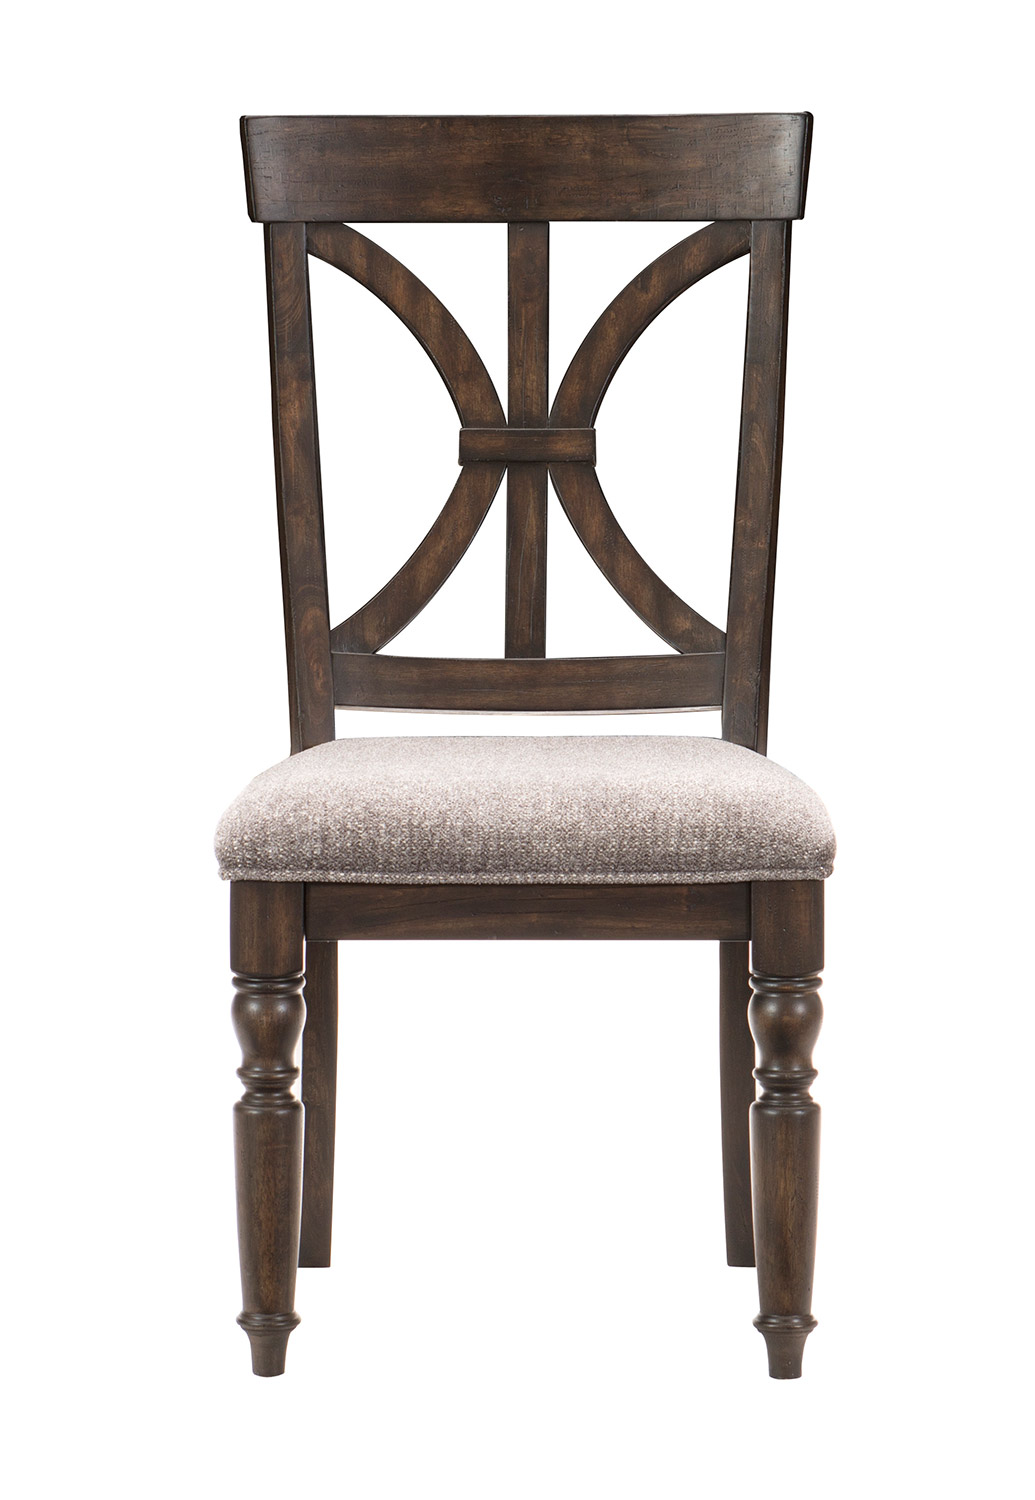 Homelegance Cardano Side Chair - Driftwood Charcoal